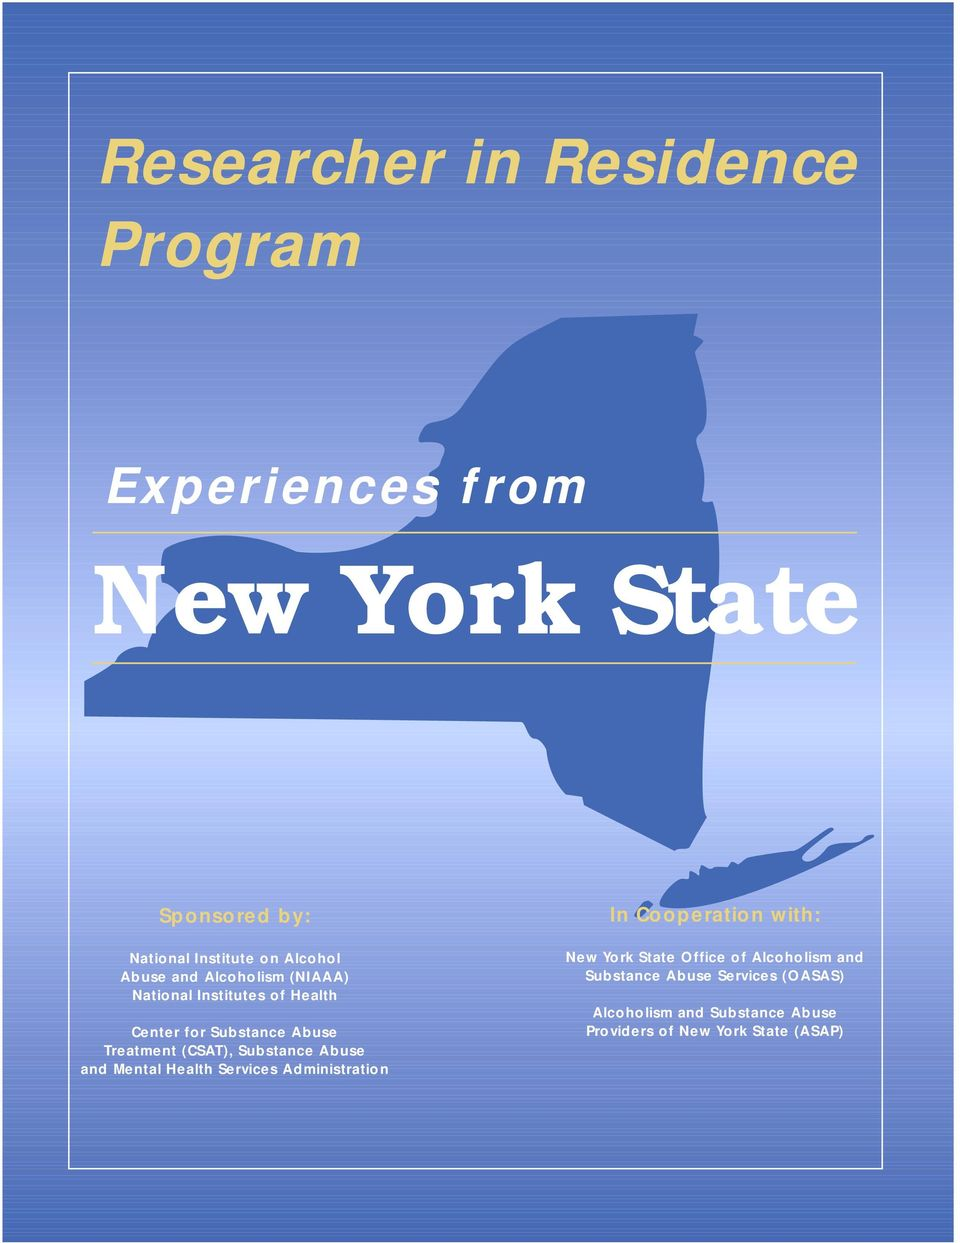 Substance Abuse and Mental Health Services Administration In Cooperation with: New York State Office of